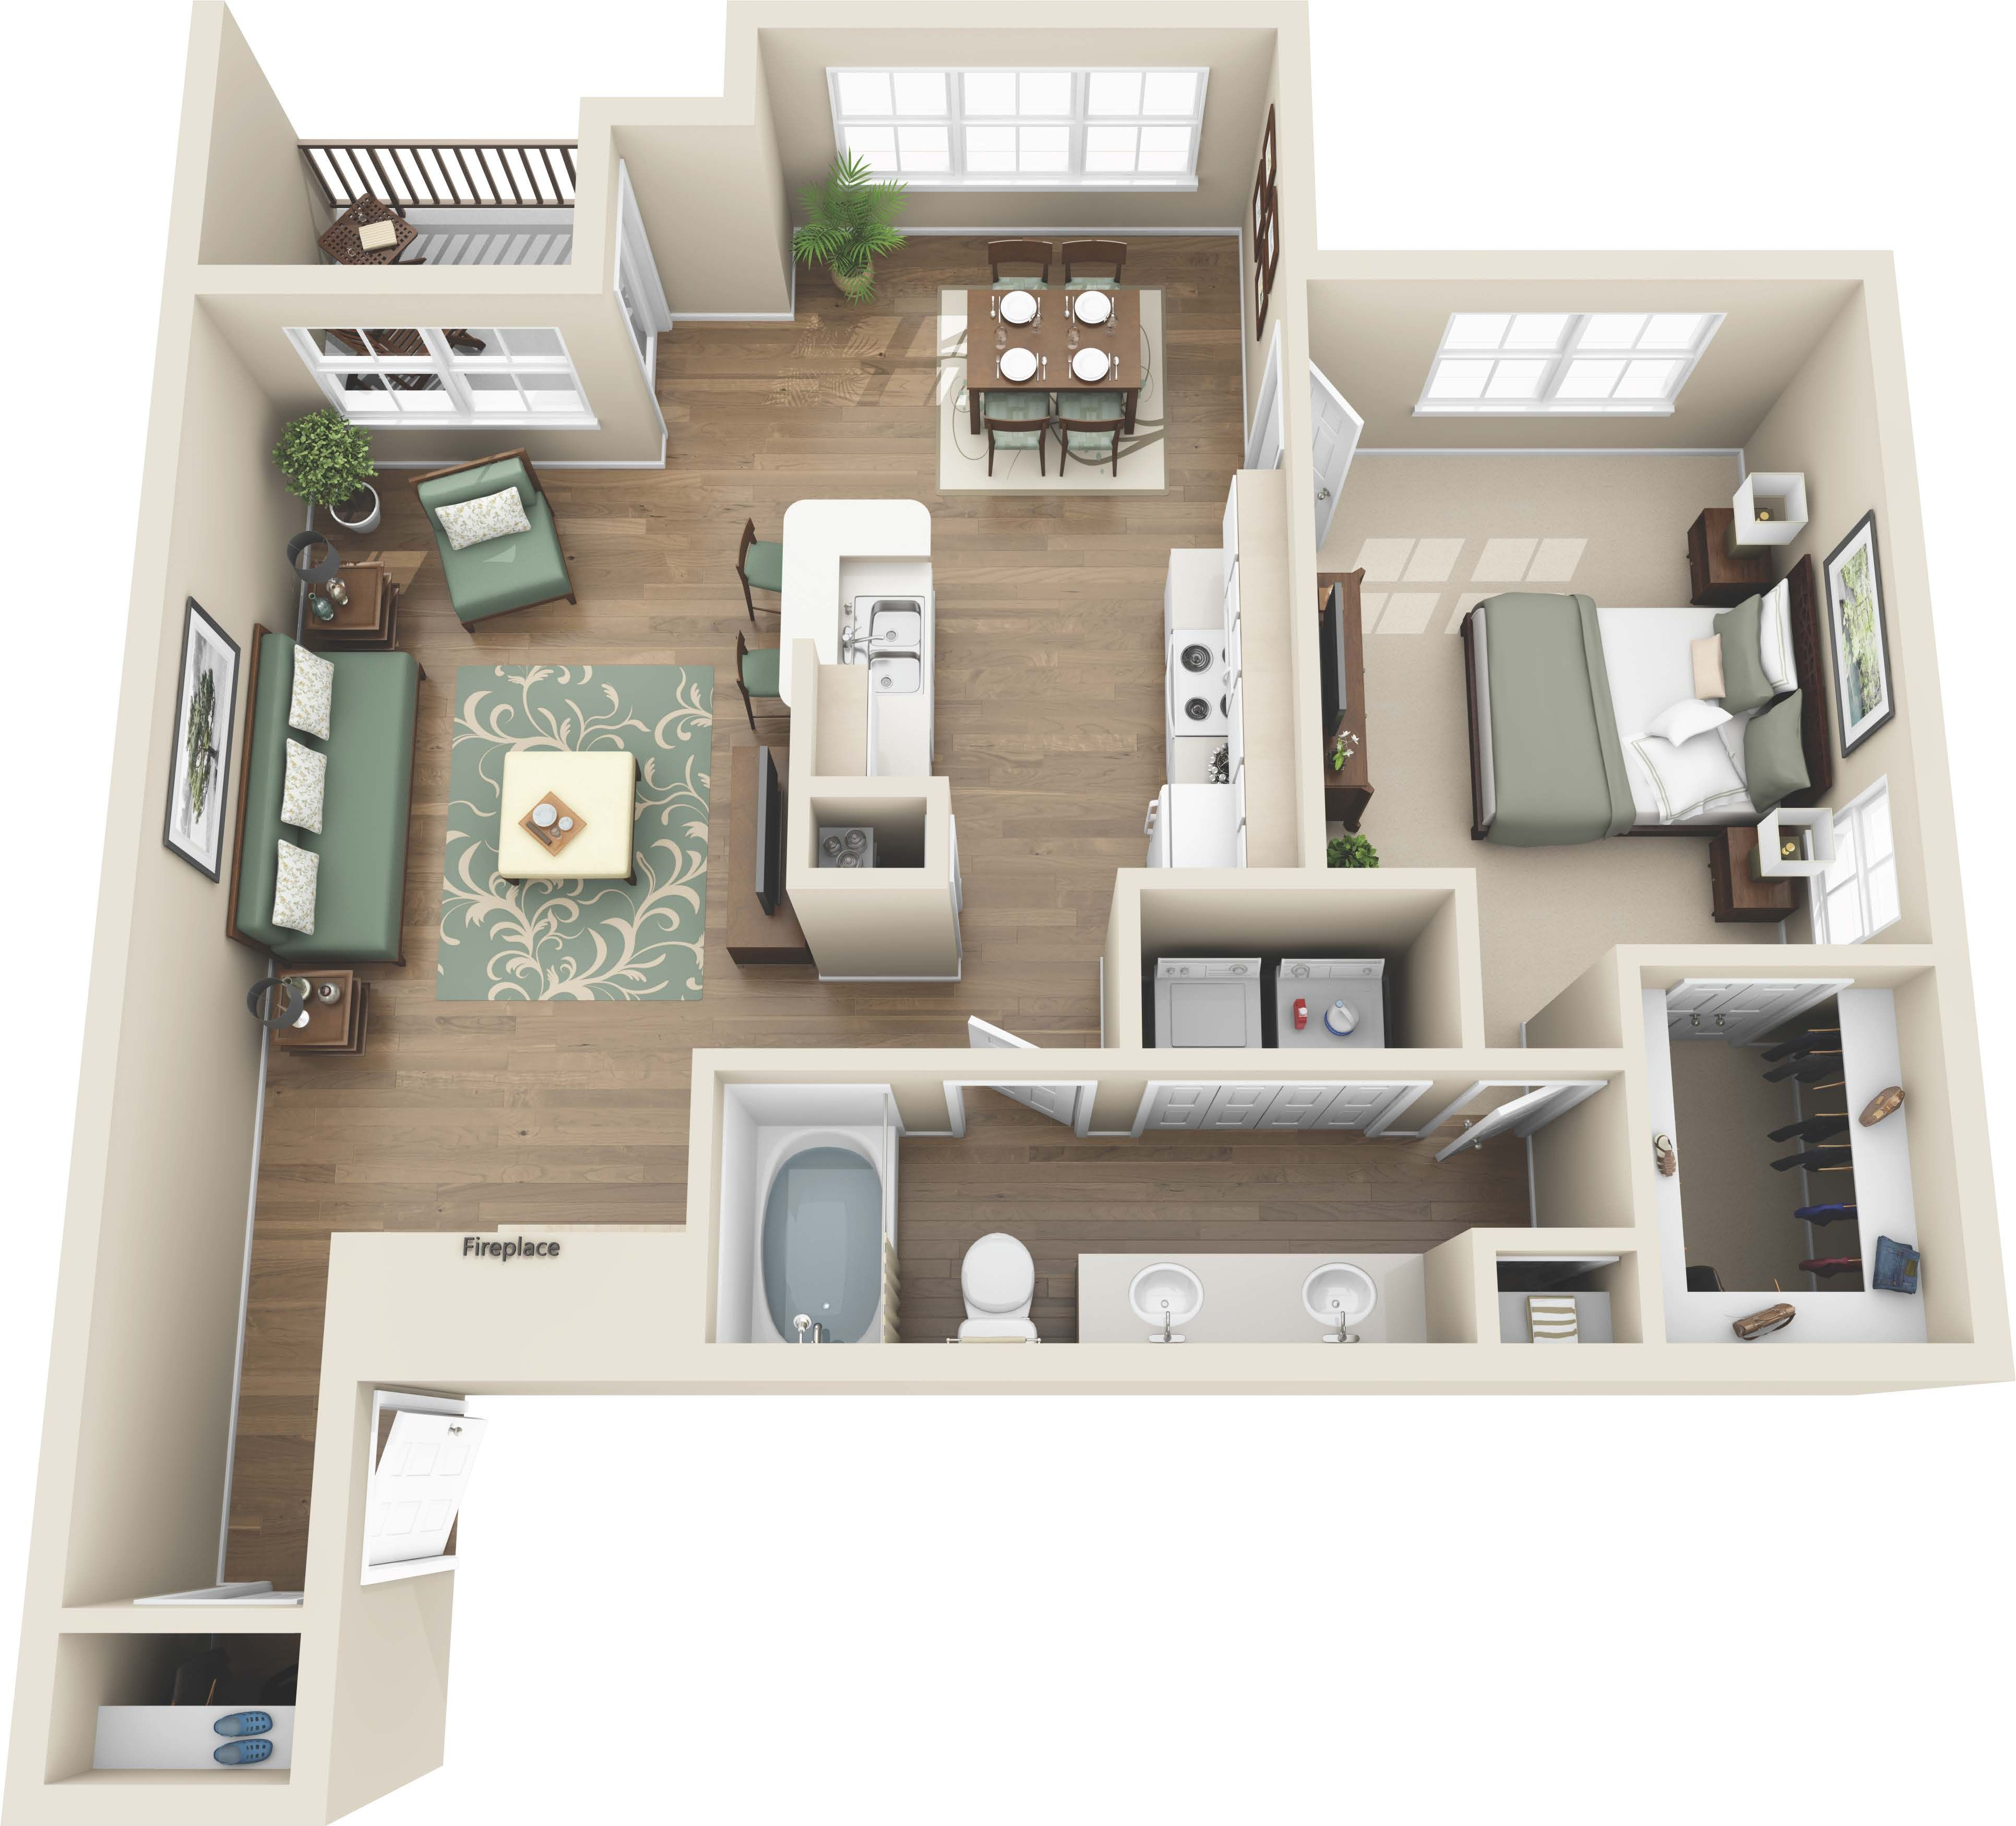 12 3 bedroom apartment floor plans in colorado springs co 12 3 bedroom apartment floor plans in colorado springs co broadmoor ridge apartment homes colorado springs here we come pinterest malvernweather Images